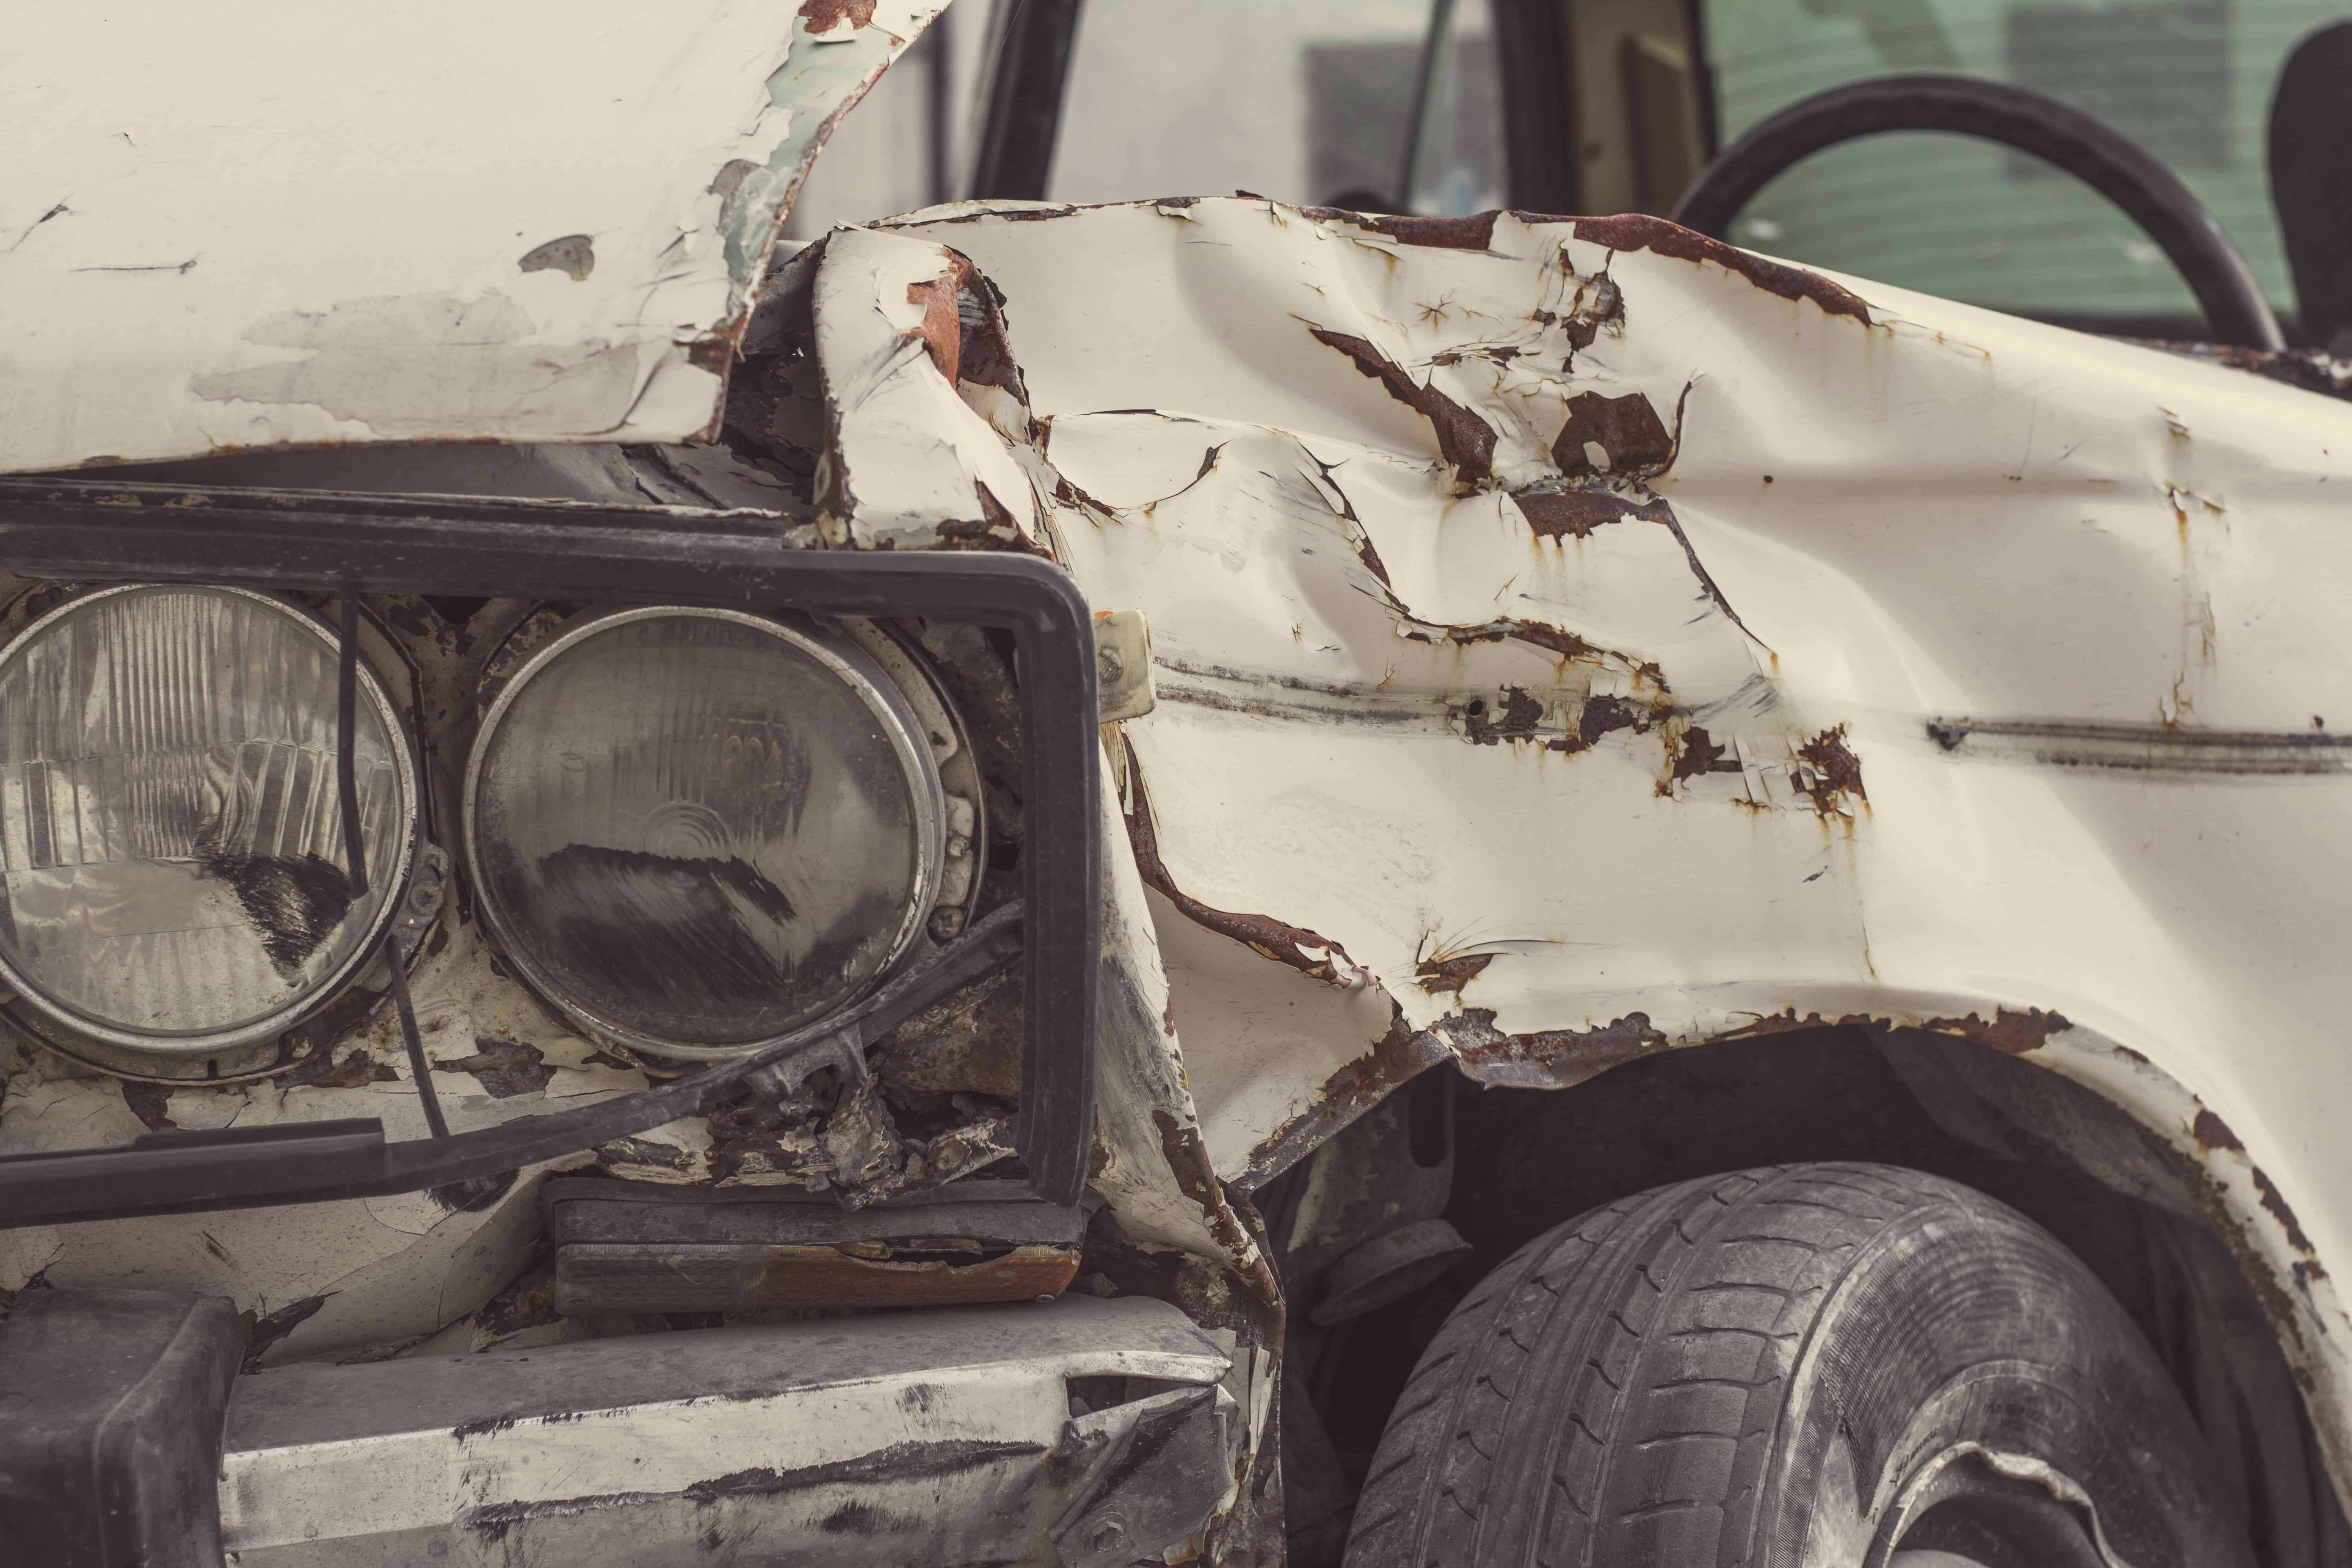 Woman Dies, Man Critically Injured in Hit-and-Run Crash on Highway 173, Suspect at Large [Hesperia, CA]